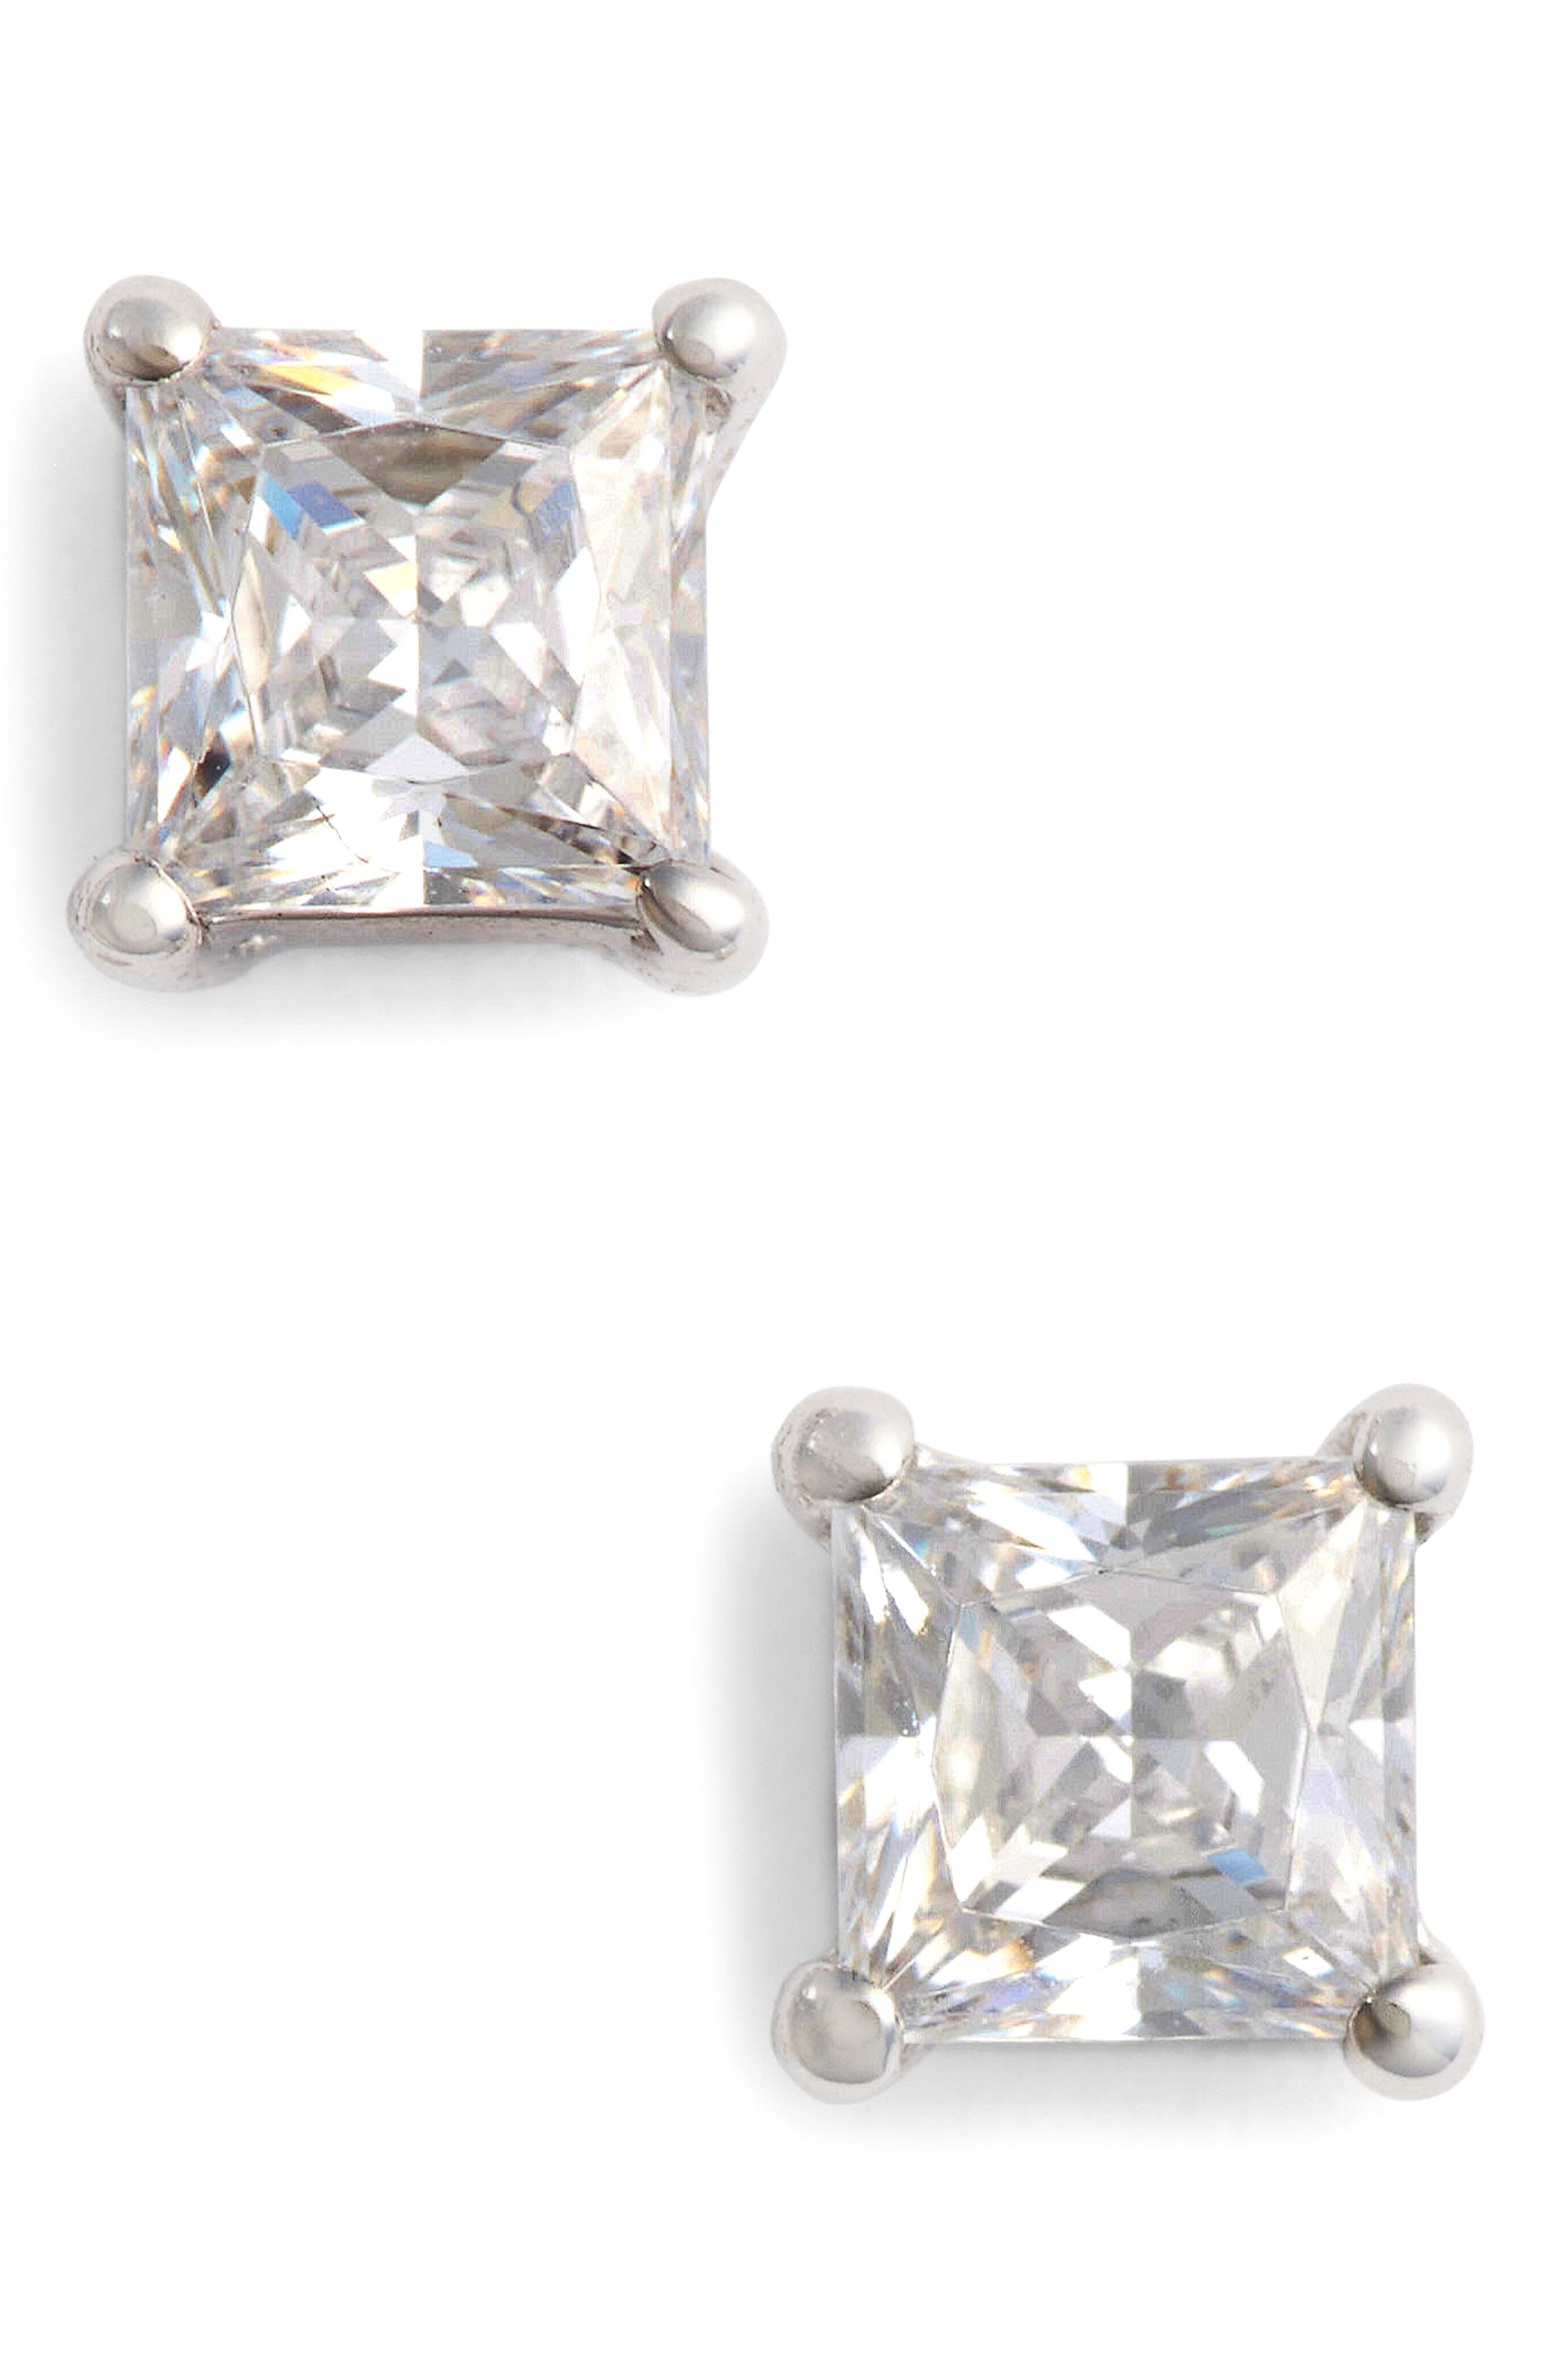 Simulated Diamond Stud Earrings,                             Main thumbnail 1, color,                             Silver/ Clear